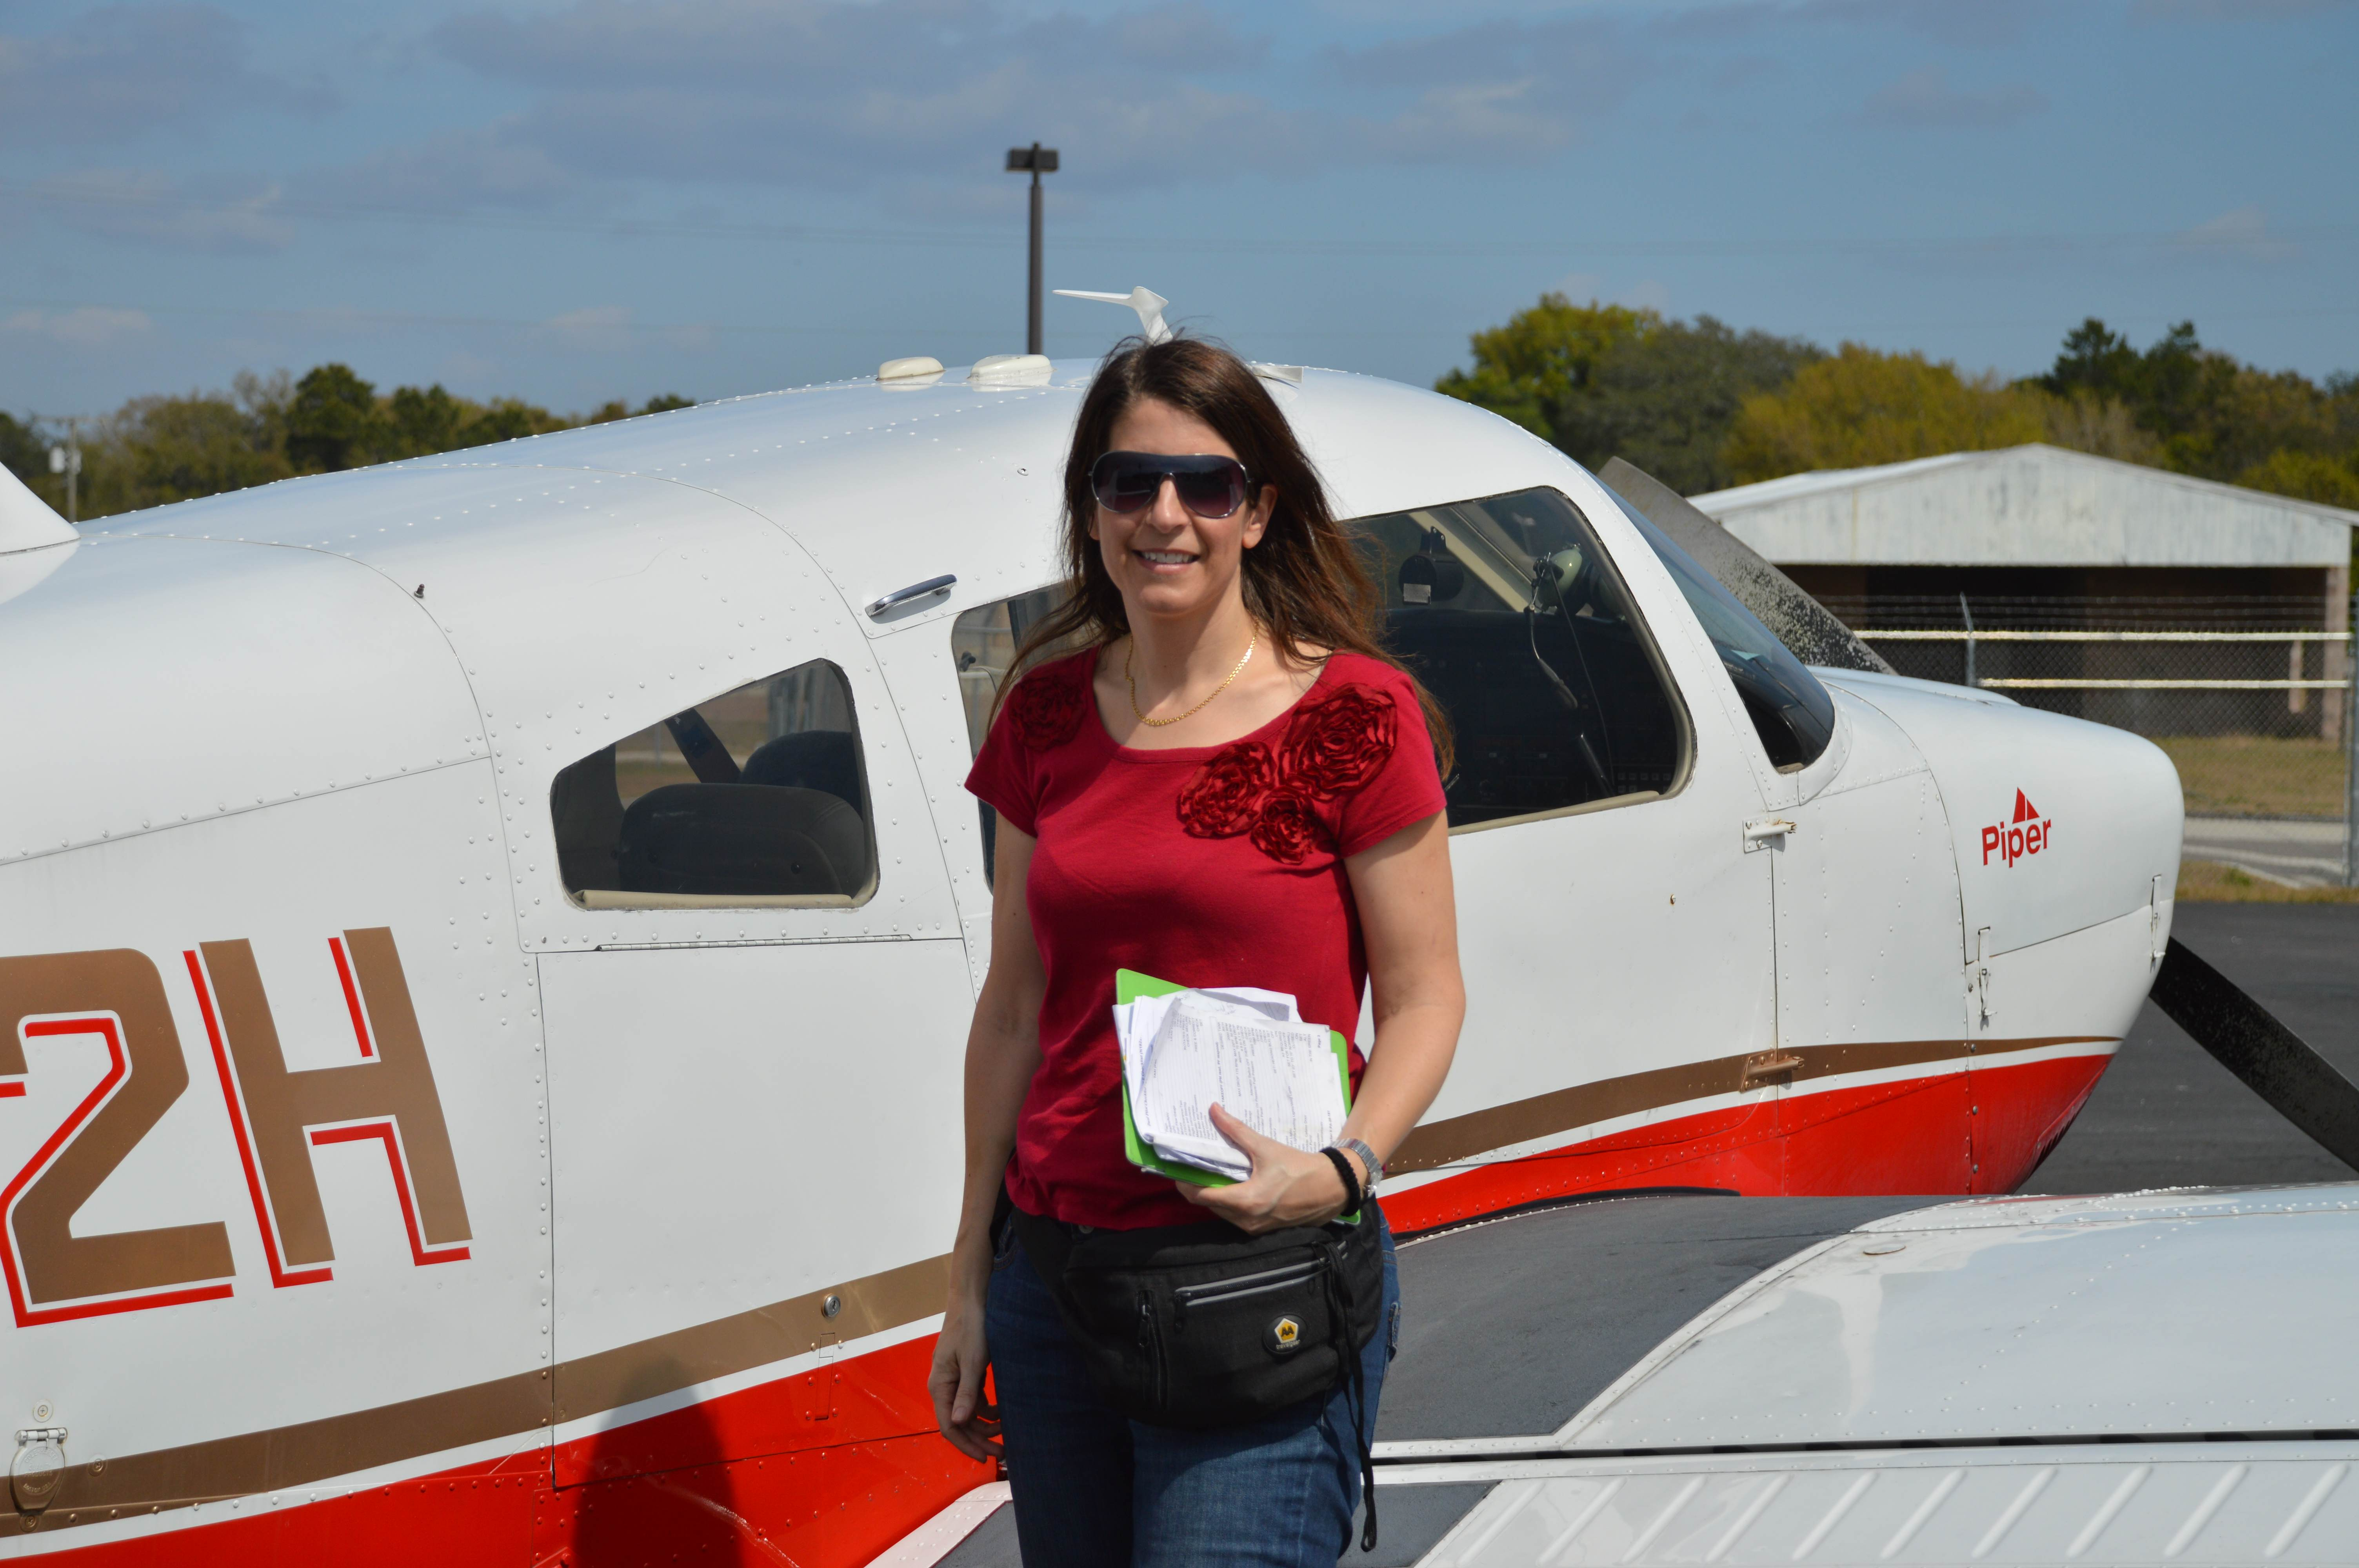 Elisabeth Wuethrichan, engineer from Switzerland, came to pilot for the event with her hubby who is also a pilot.